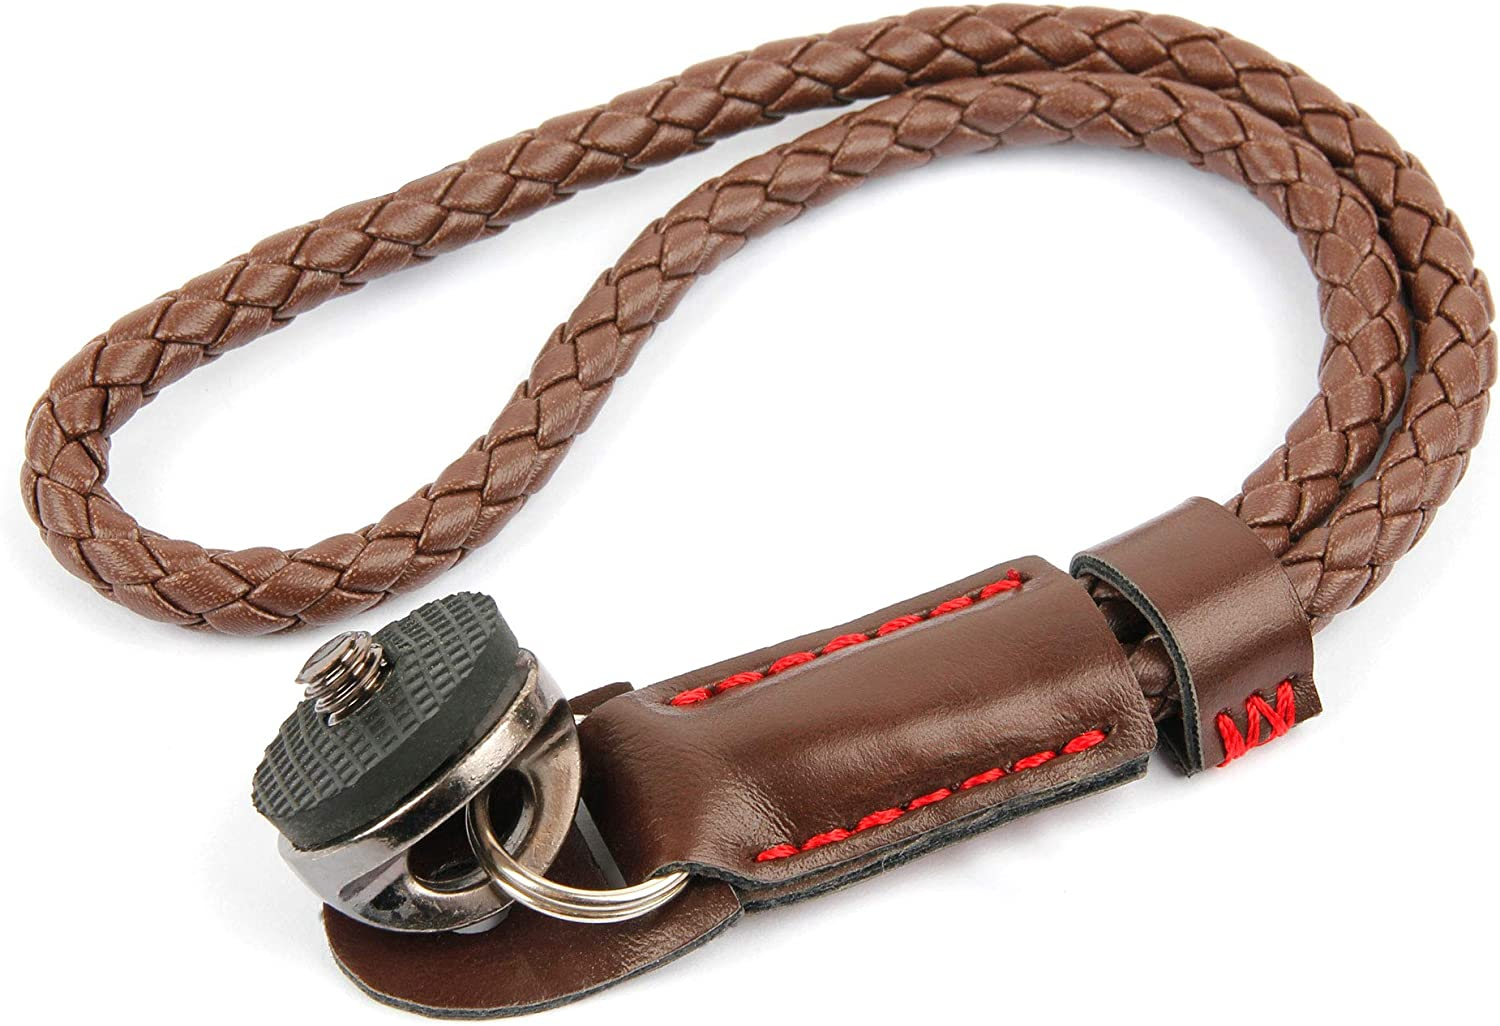 Compatible with Panasonic Lumix DMC-FS35 /& Lumix DMC-FS37 Digital Cameras DURAGADGET Brown PU Leather Secure Adjustable Wrist Strap